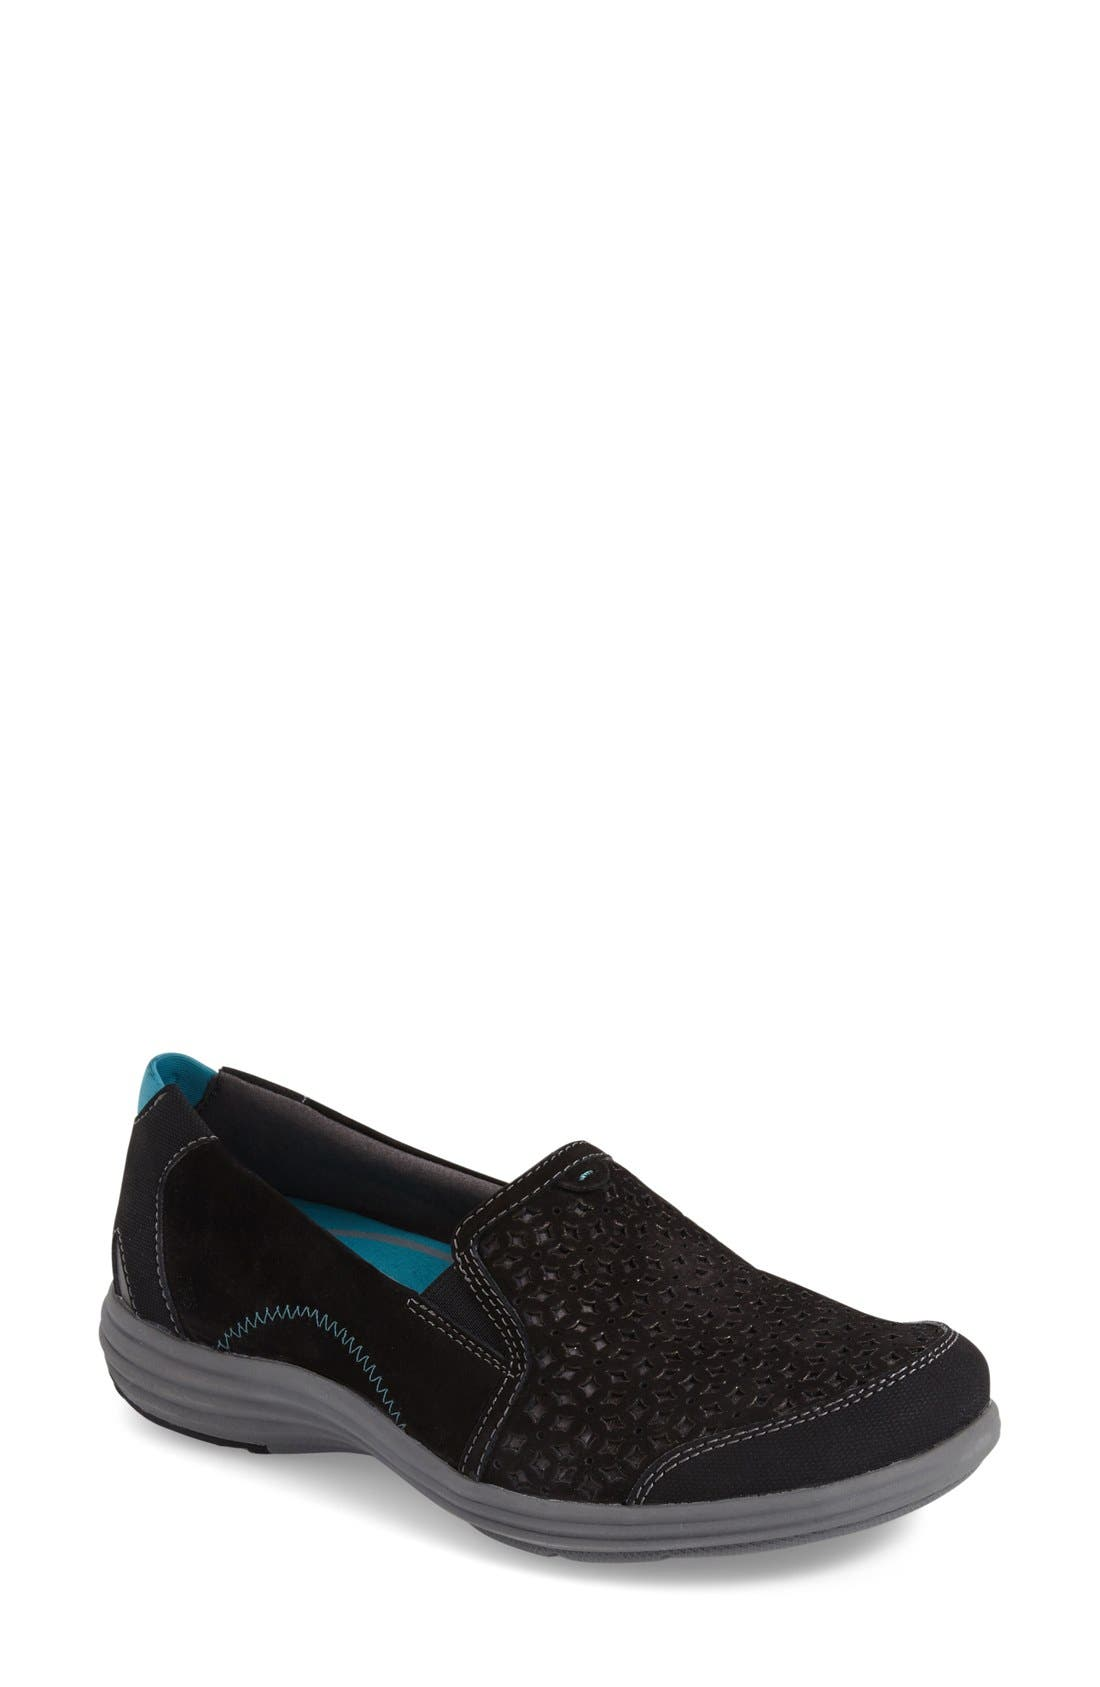 'Bonnie' Slip-On Sneaker,                         Main,                         color, BLACK LEATHER